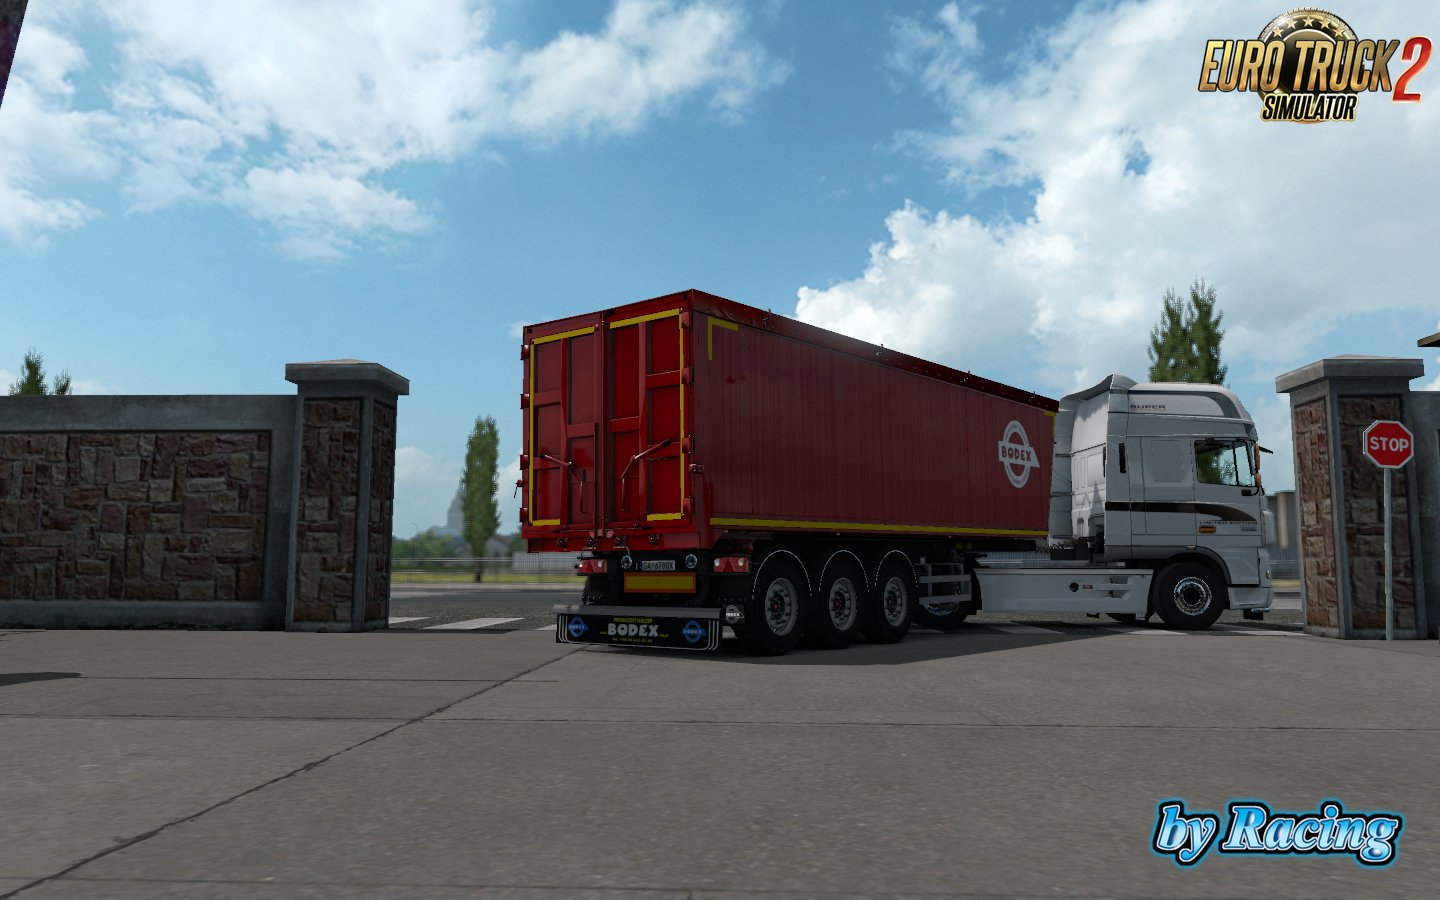 Trailer Bodex KIS 3 v1.2.1 by Racing (1.35.x)